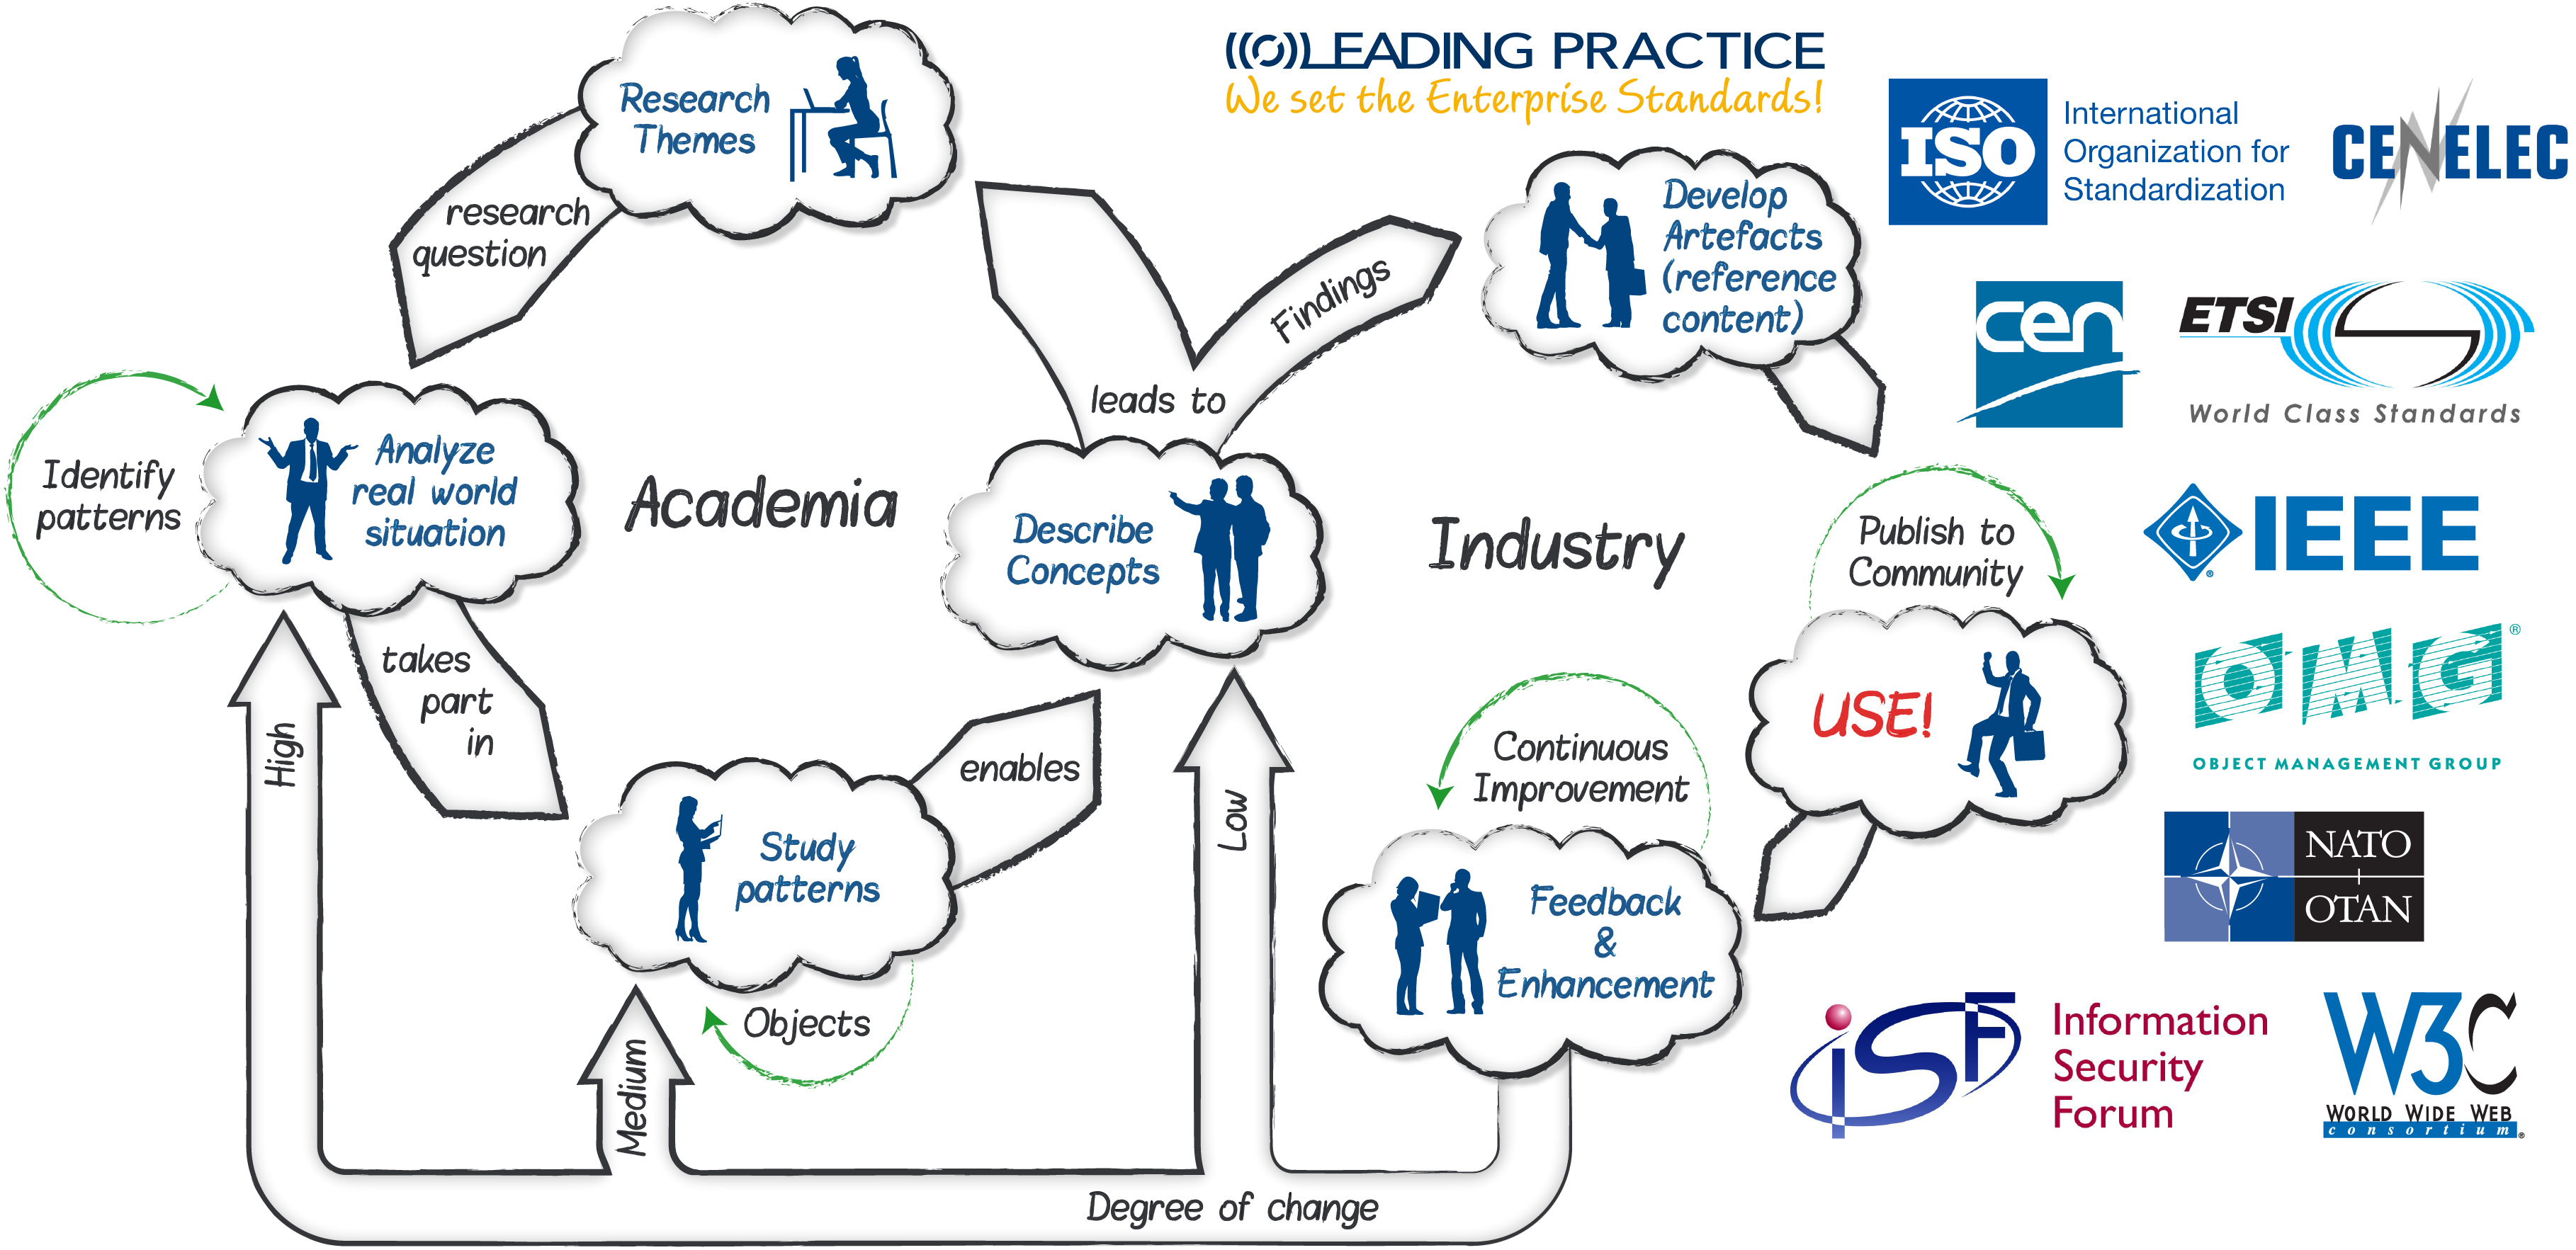 Figure 1: Overview of the Academia Industry Research (AIR) loop.